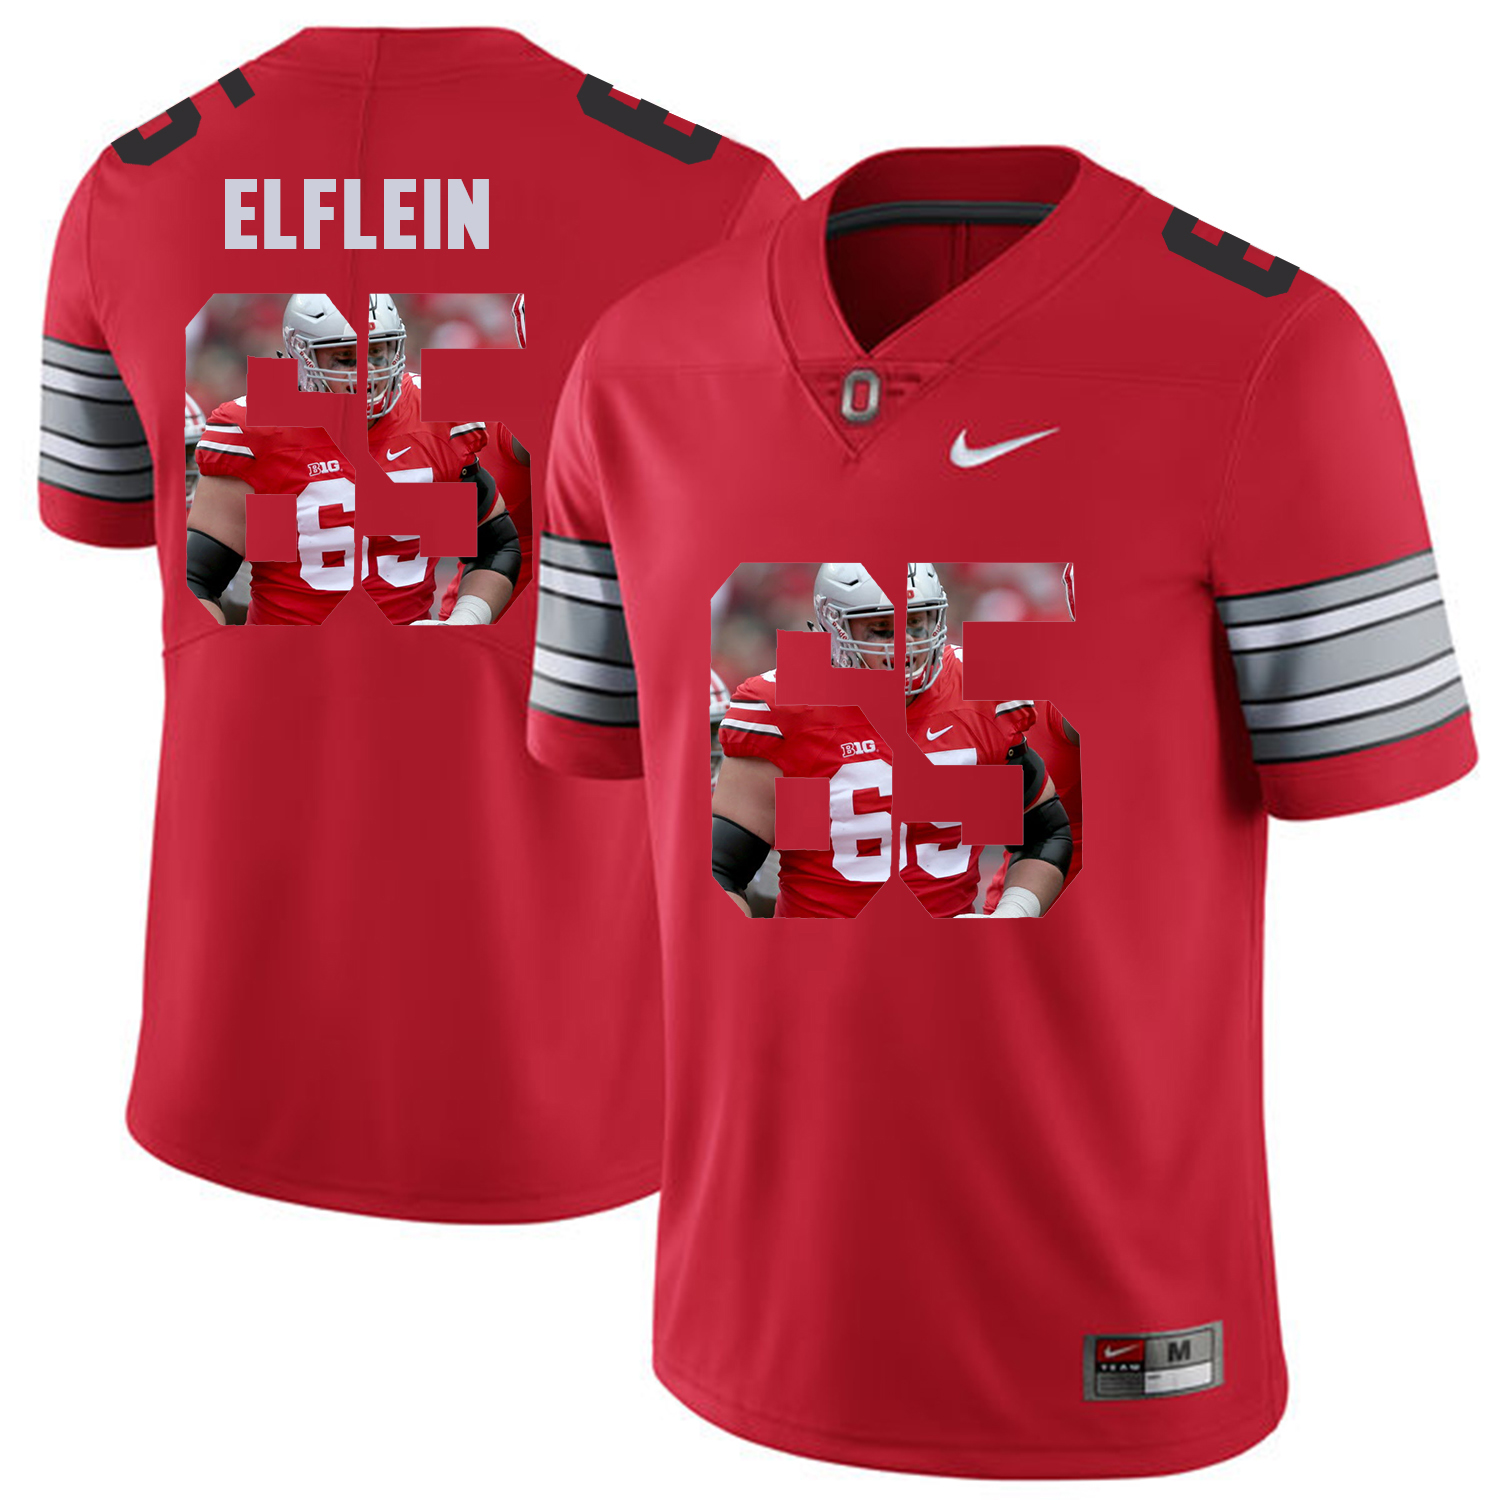 Men Ohio State 65 Elflein Red Fashion Edition Customized NCAA Jerseys